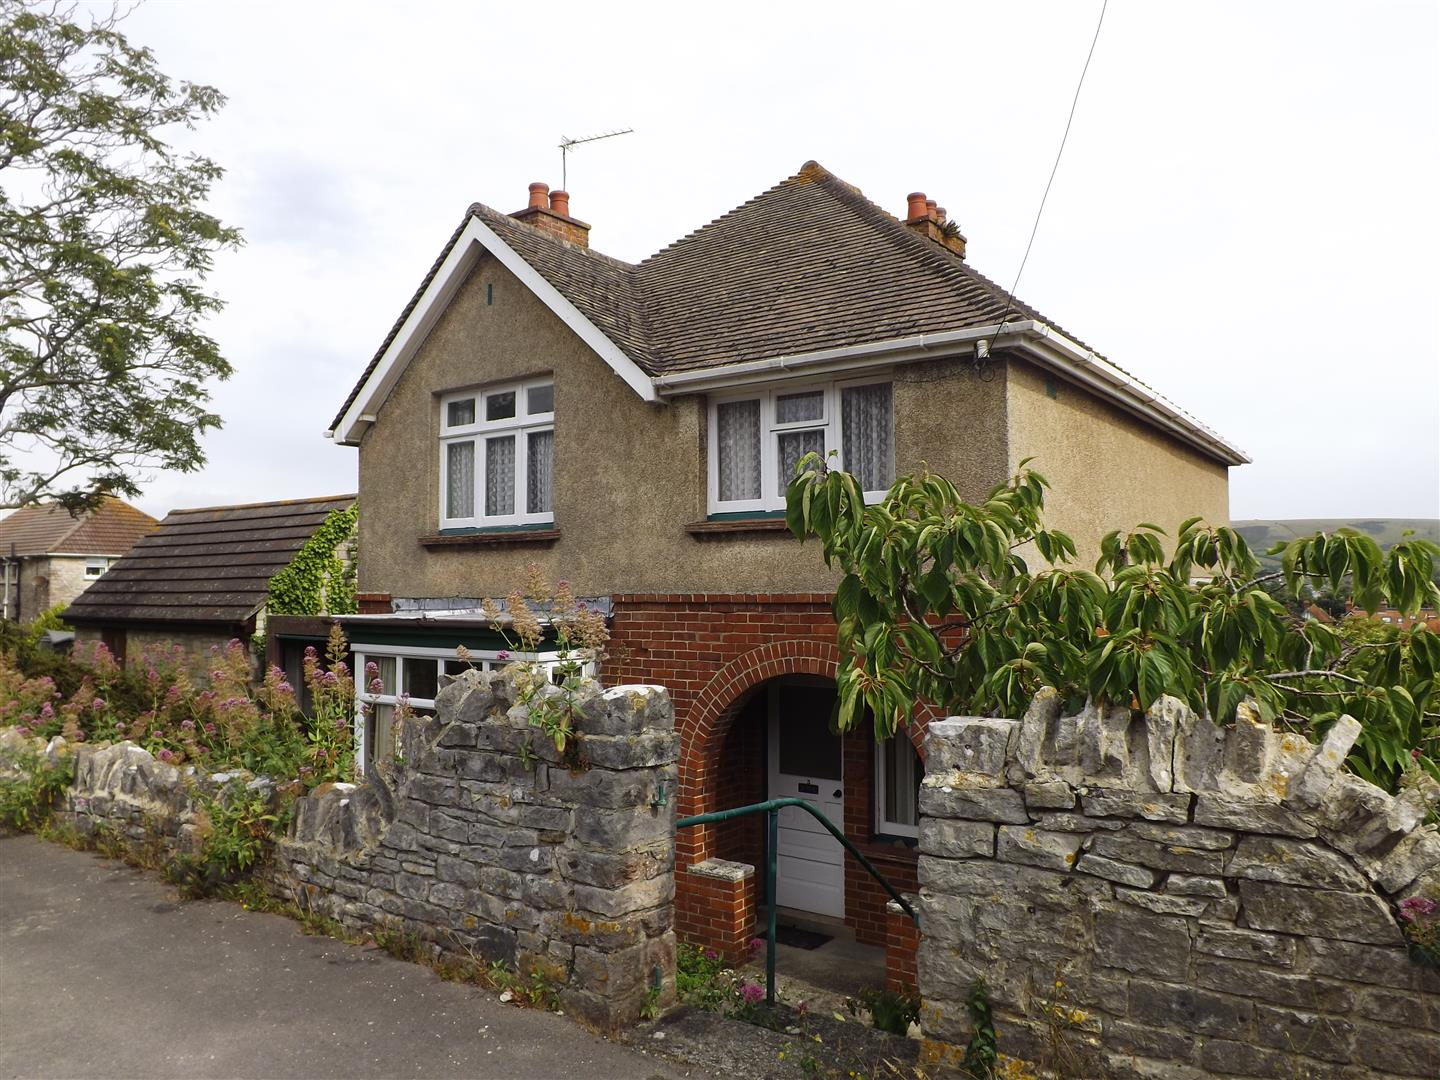 3 Bedrooms Detached House for sale in South Road, Swanage